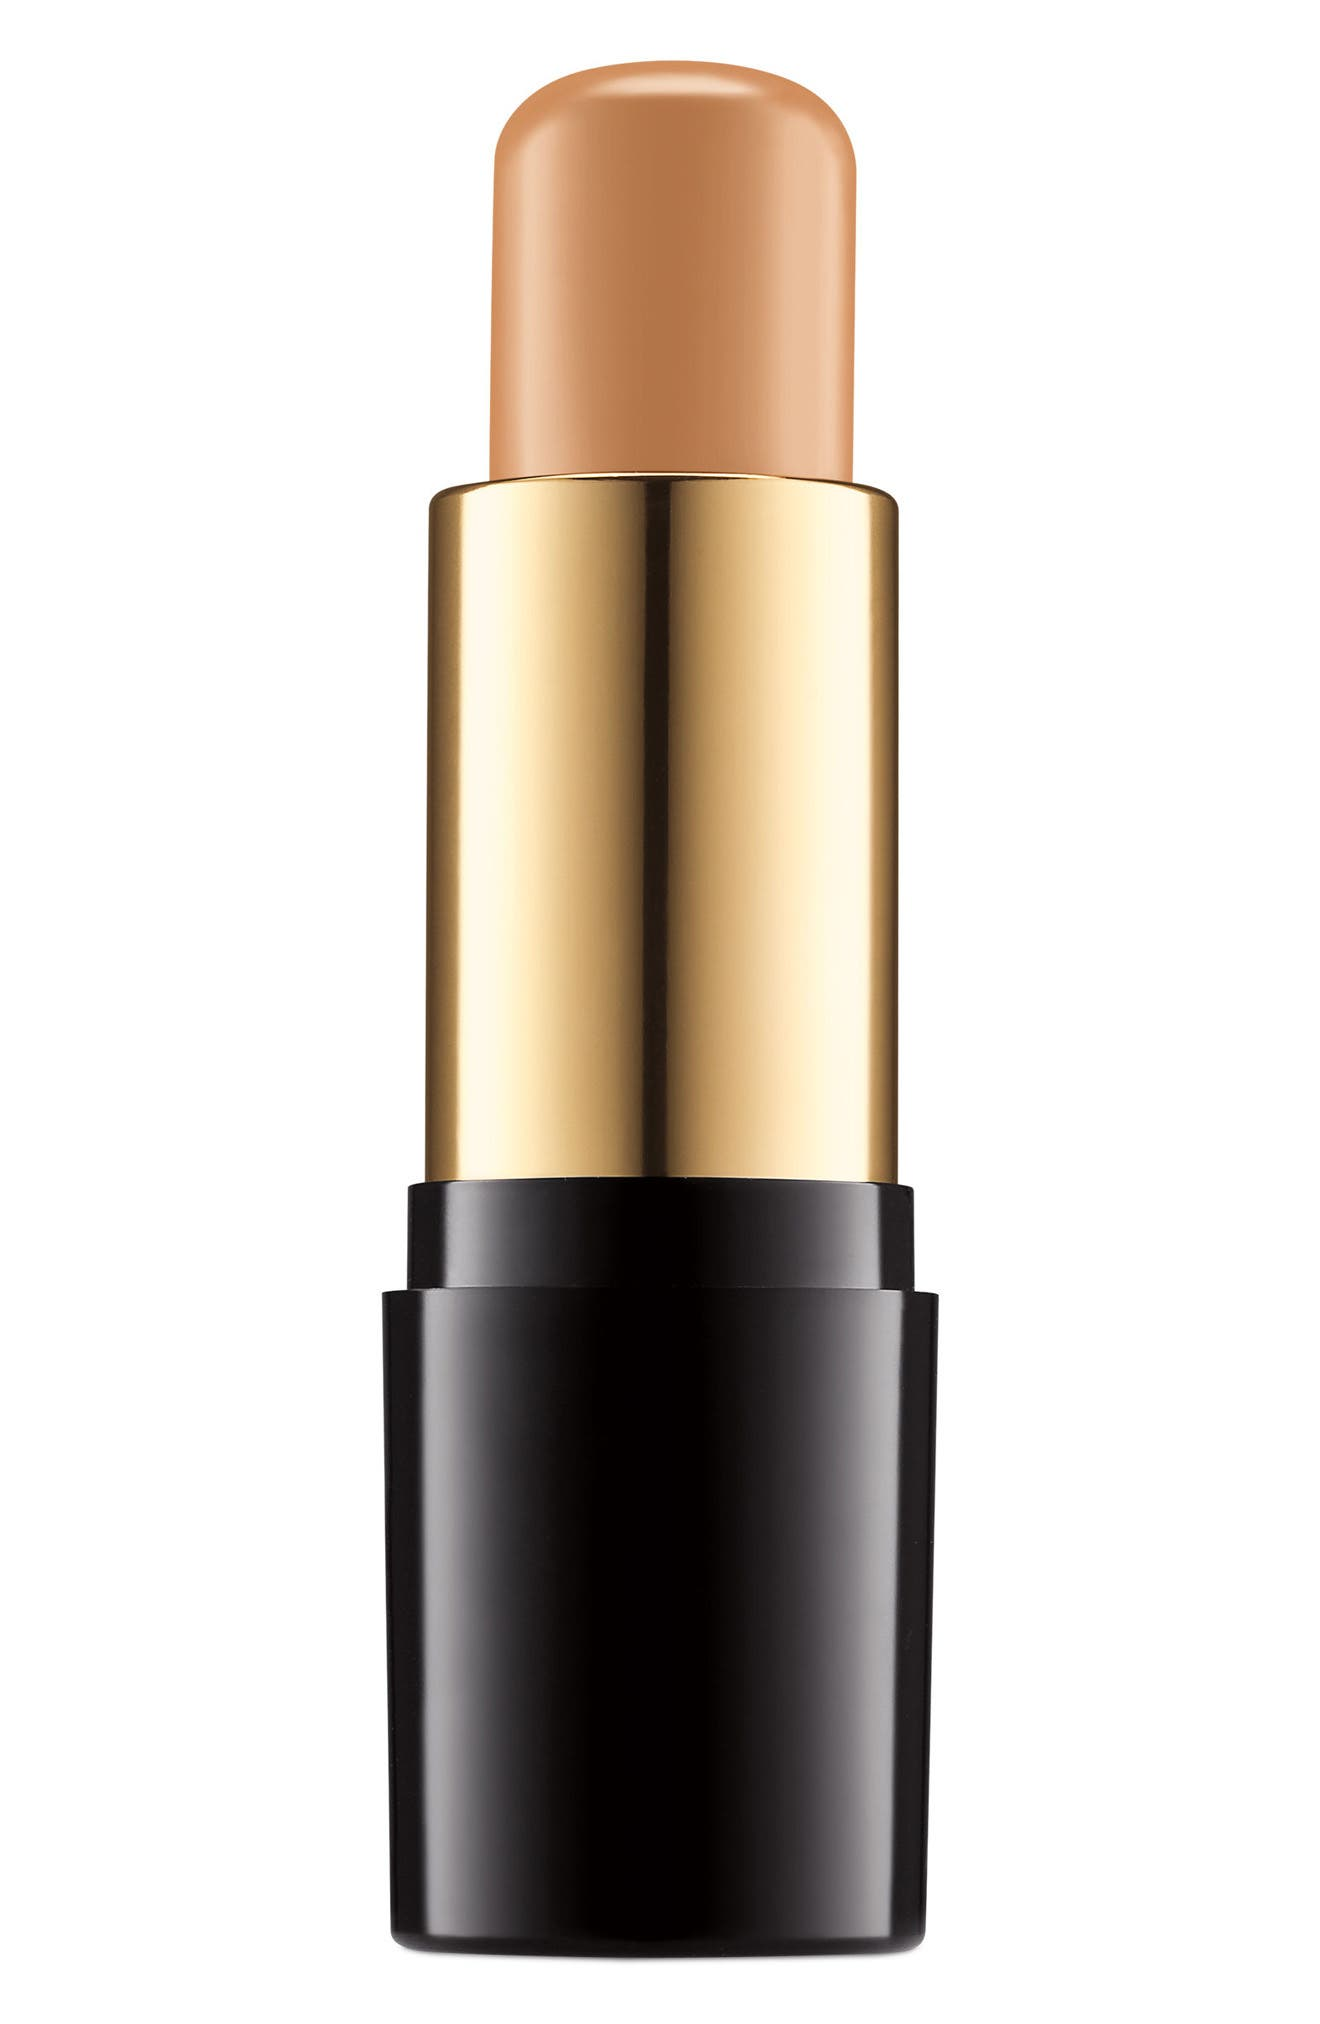 Teint Idole Ultra 24H Foundation Stick Broad Spectrum SPF 21,                             Main thumbnail 1, color,                             415 Bisque W